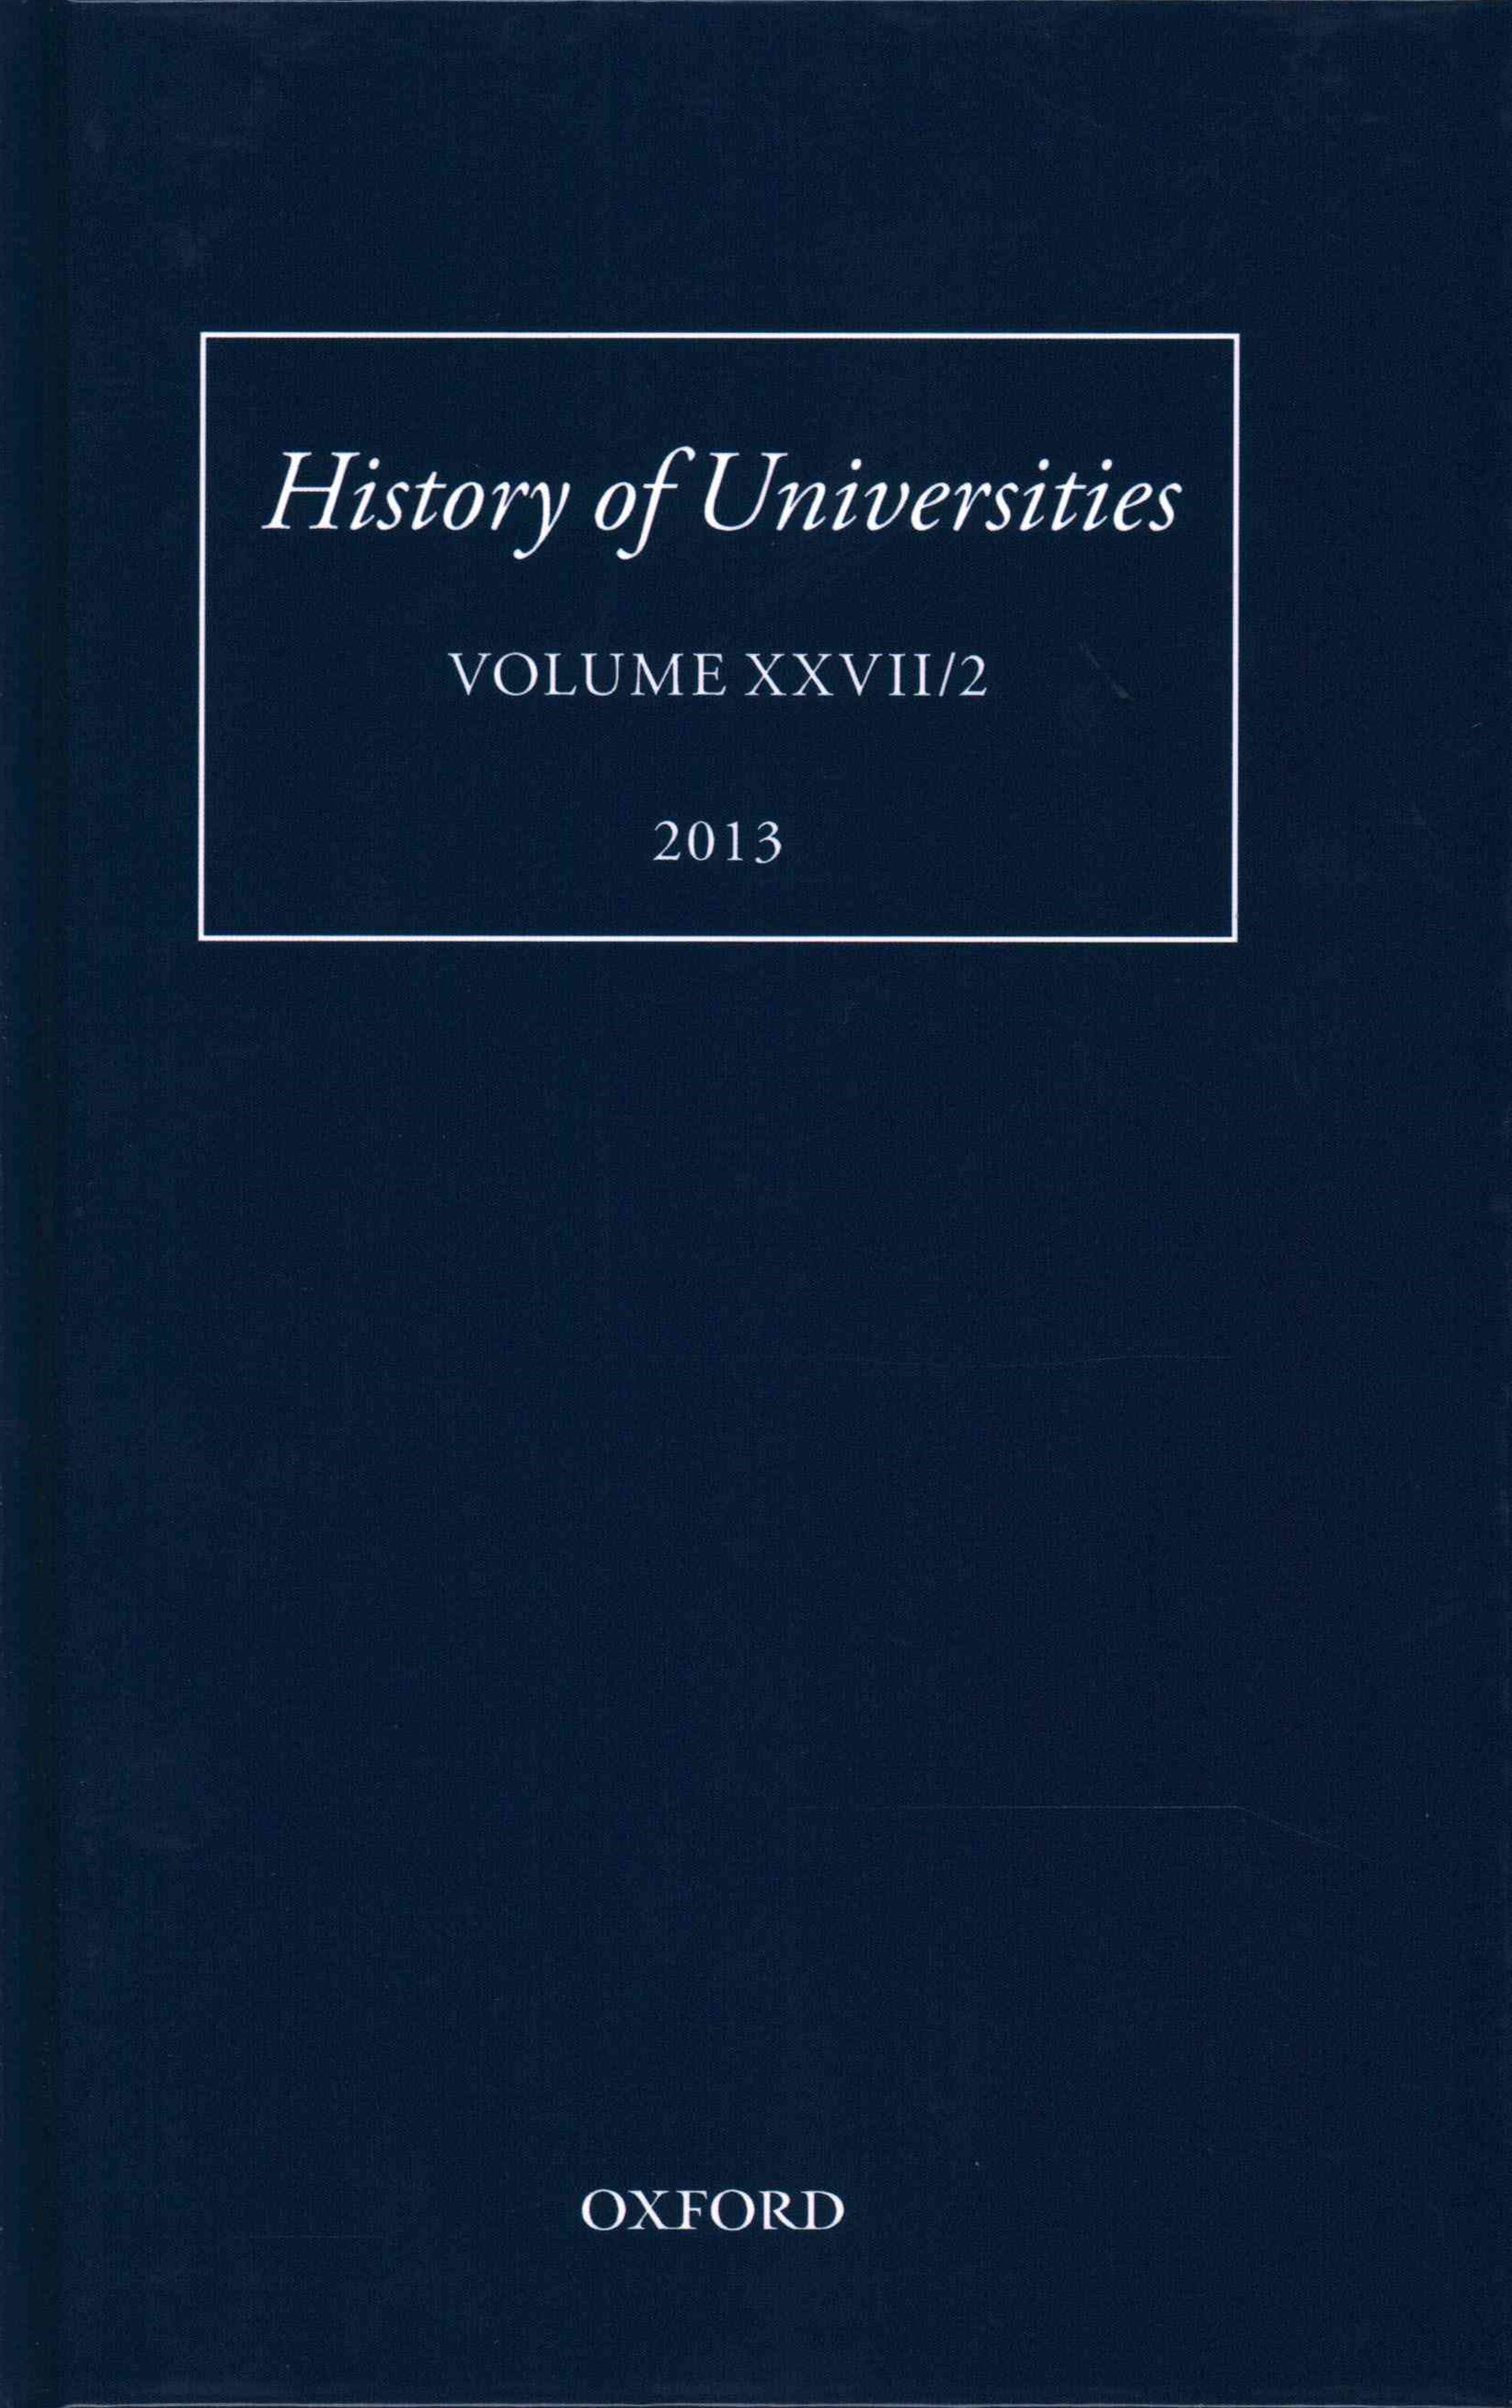 History of Universities Volume XXVII/2